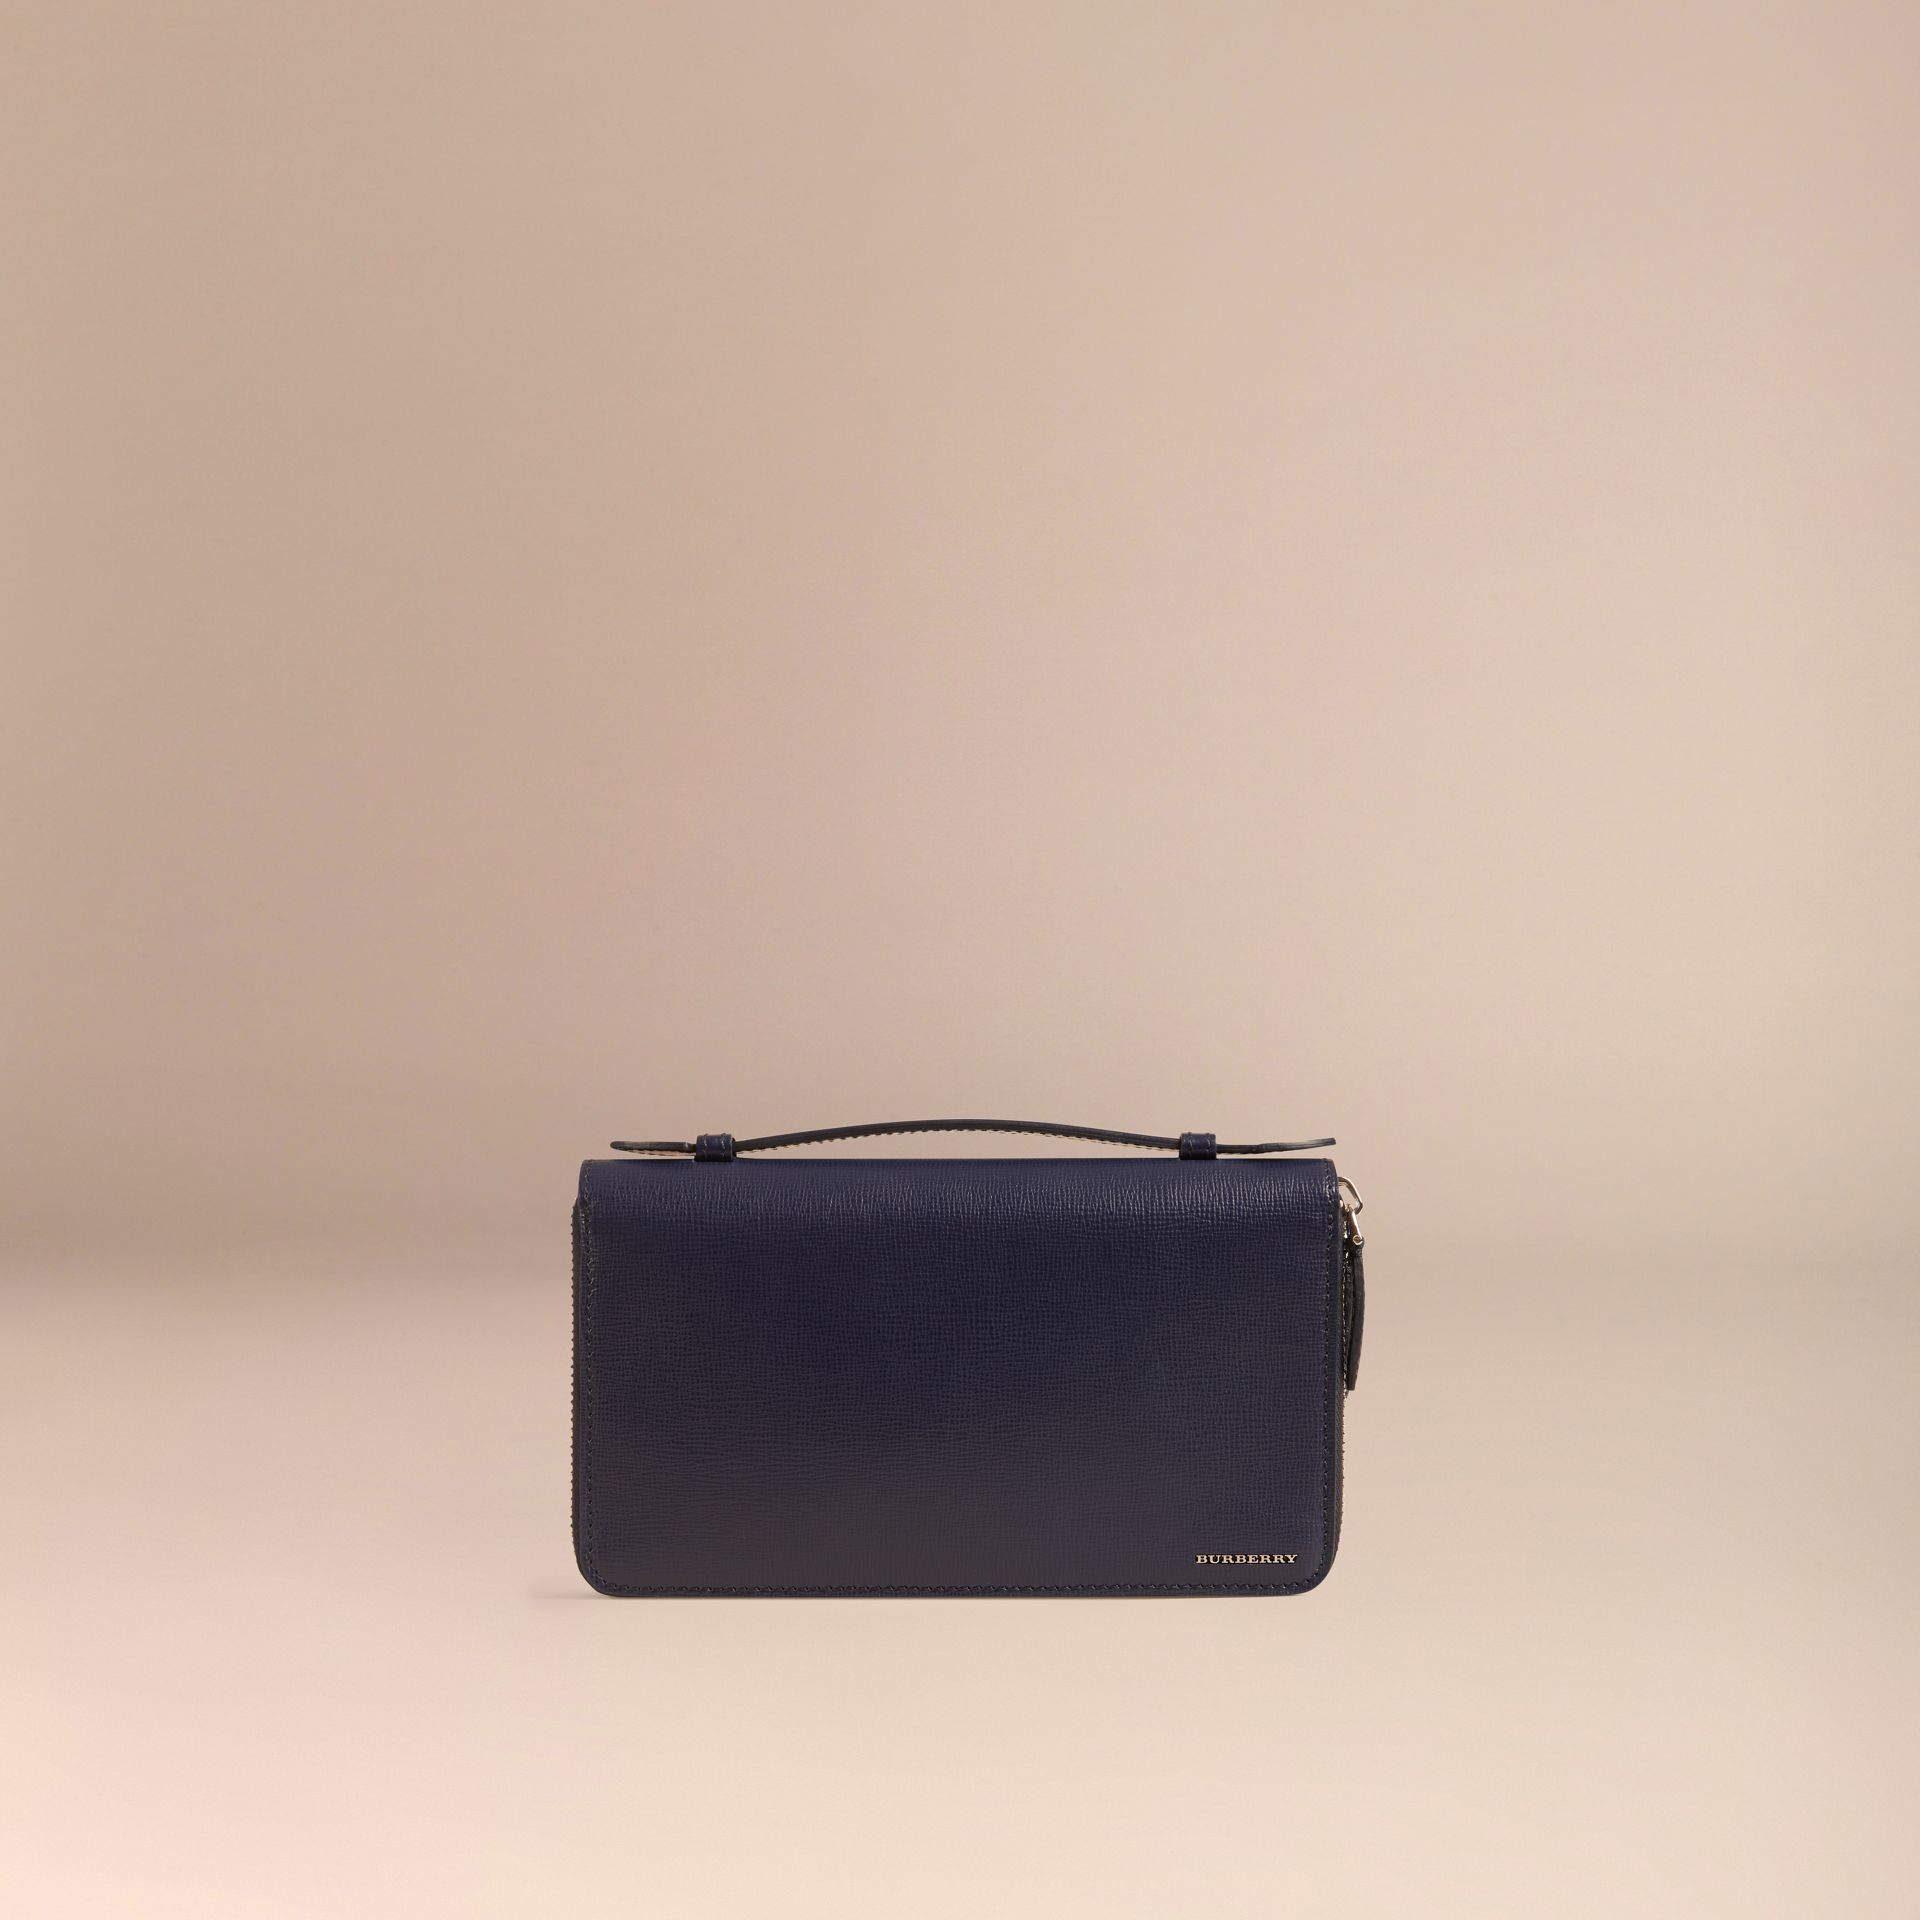 London Leather Travel Wallet in Dark Navy - Men | Burberry - gallery image 2